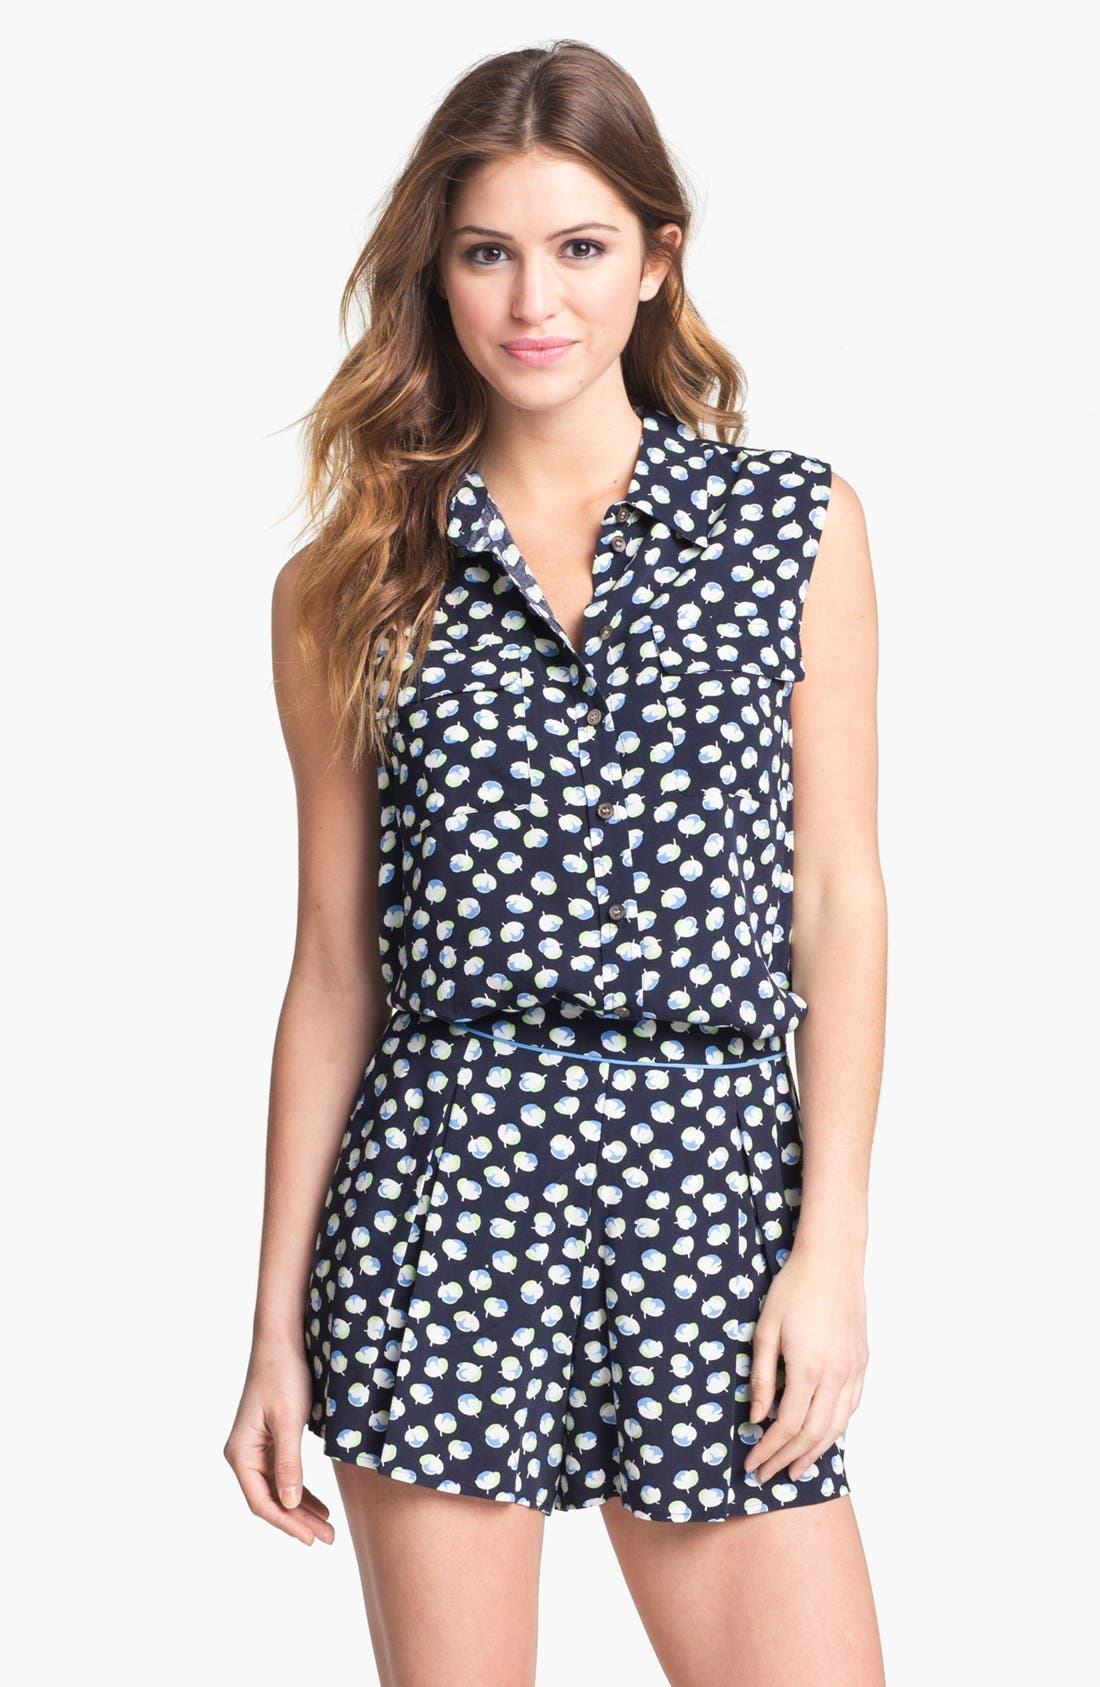 Main Image - Two by Vince Camuto Sleeveless Floral Shirt